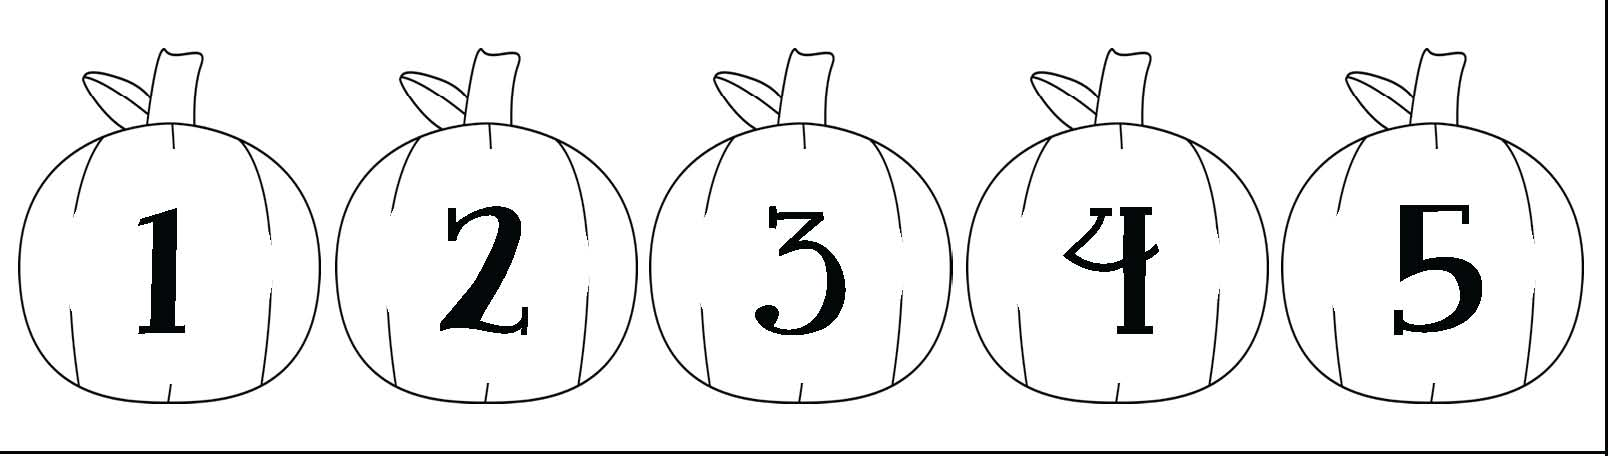 pumpkin activities, pumpkin lessons, alphabet activities,upper and lowercase letter matching activities, October alphabet cards, free alphabet cards, free ghost cards, ghost activities, halloween activities, halloween games, alphabet games, common core pumpkins, pumpkin math, pumpkin centers, counting activities, 1-to-1 correspondence activities, fall math centers, fall math activities, october math centers, october math activities